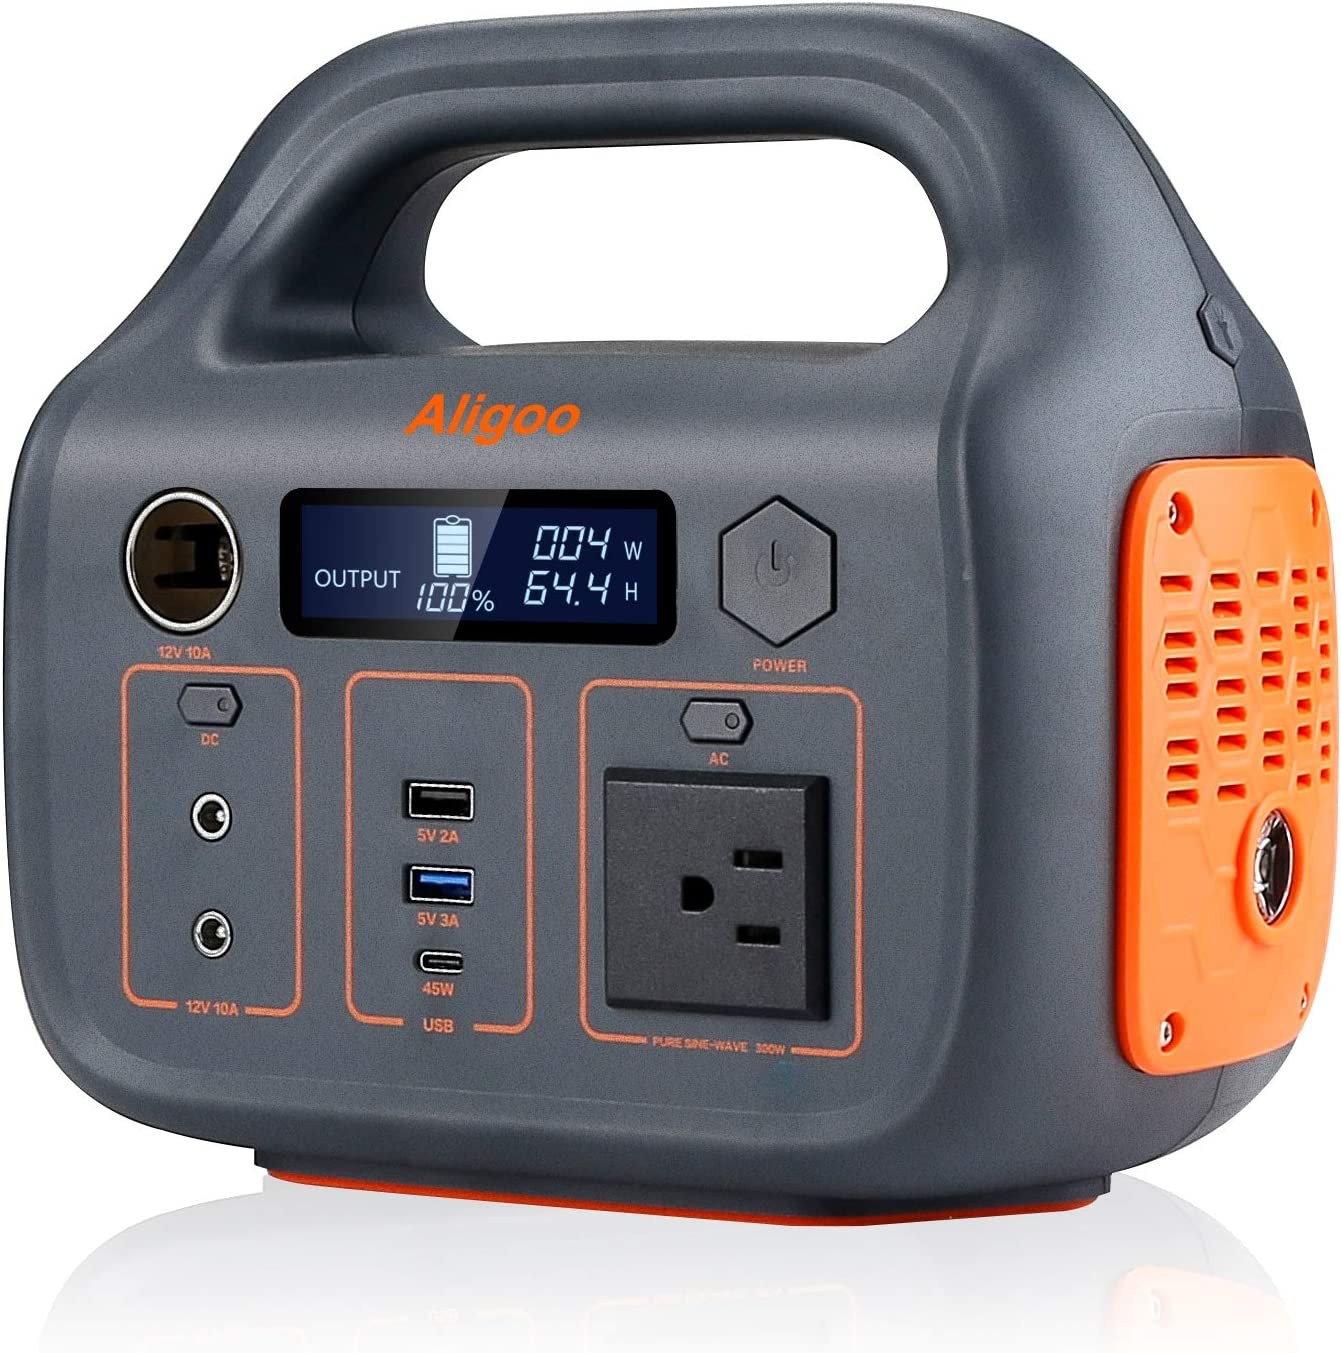 Portable Power Station,110v/300Watt Pure Sine Wave AC/DC Outlet,293Wh Backup Lithium Battery, Solar Generator (Solar Panel Optional) for Outdoors Camping Travel Hunting Emergency